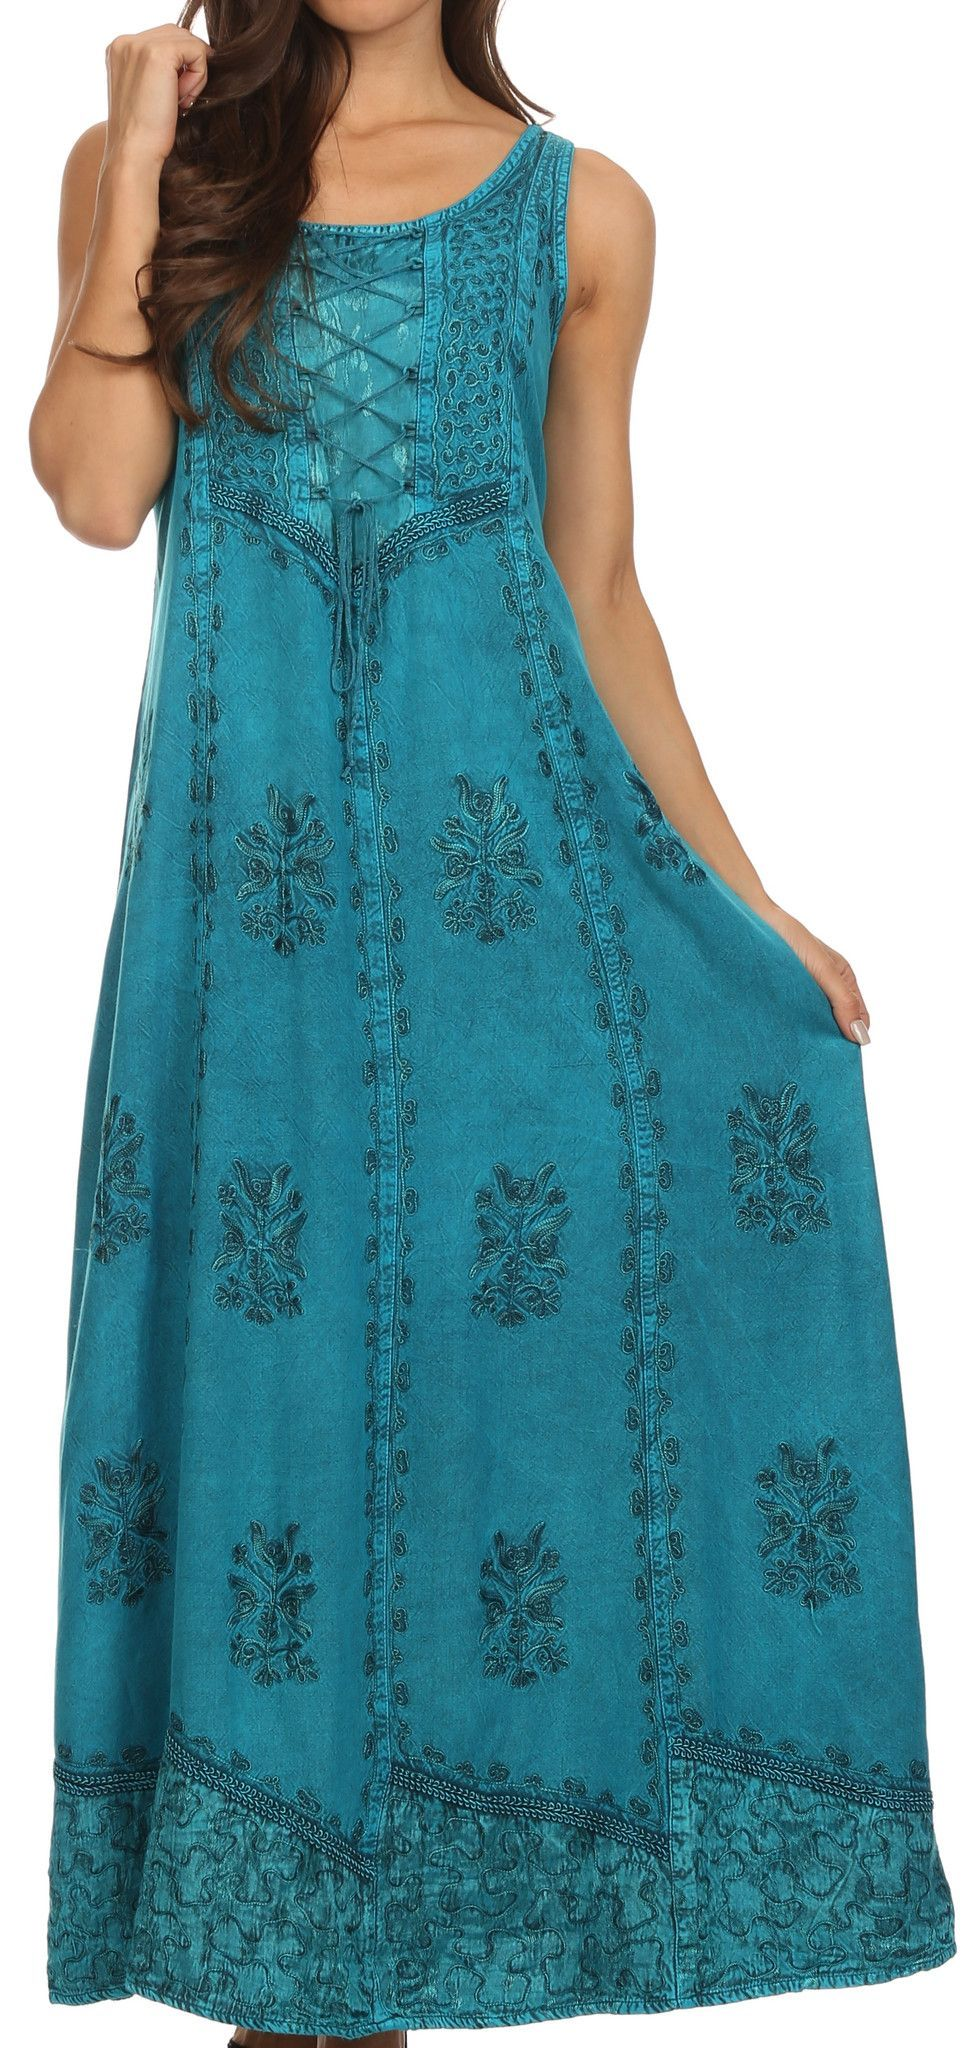 Sakkas stella long tank top adjustable caftan corset dress with